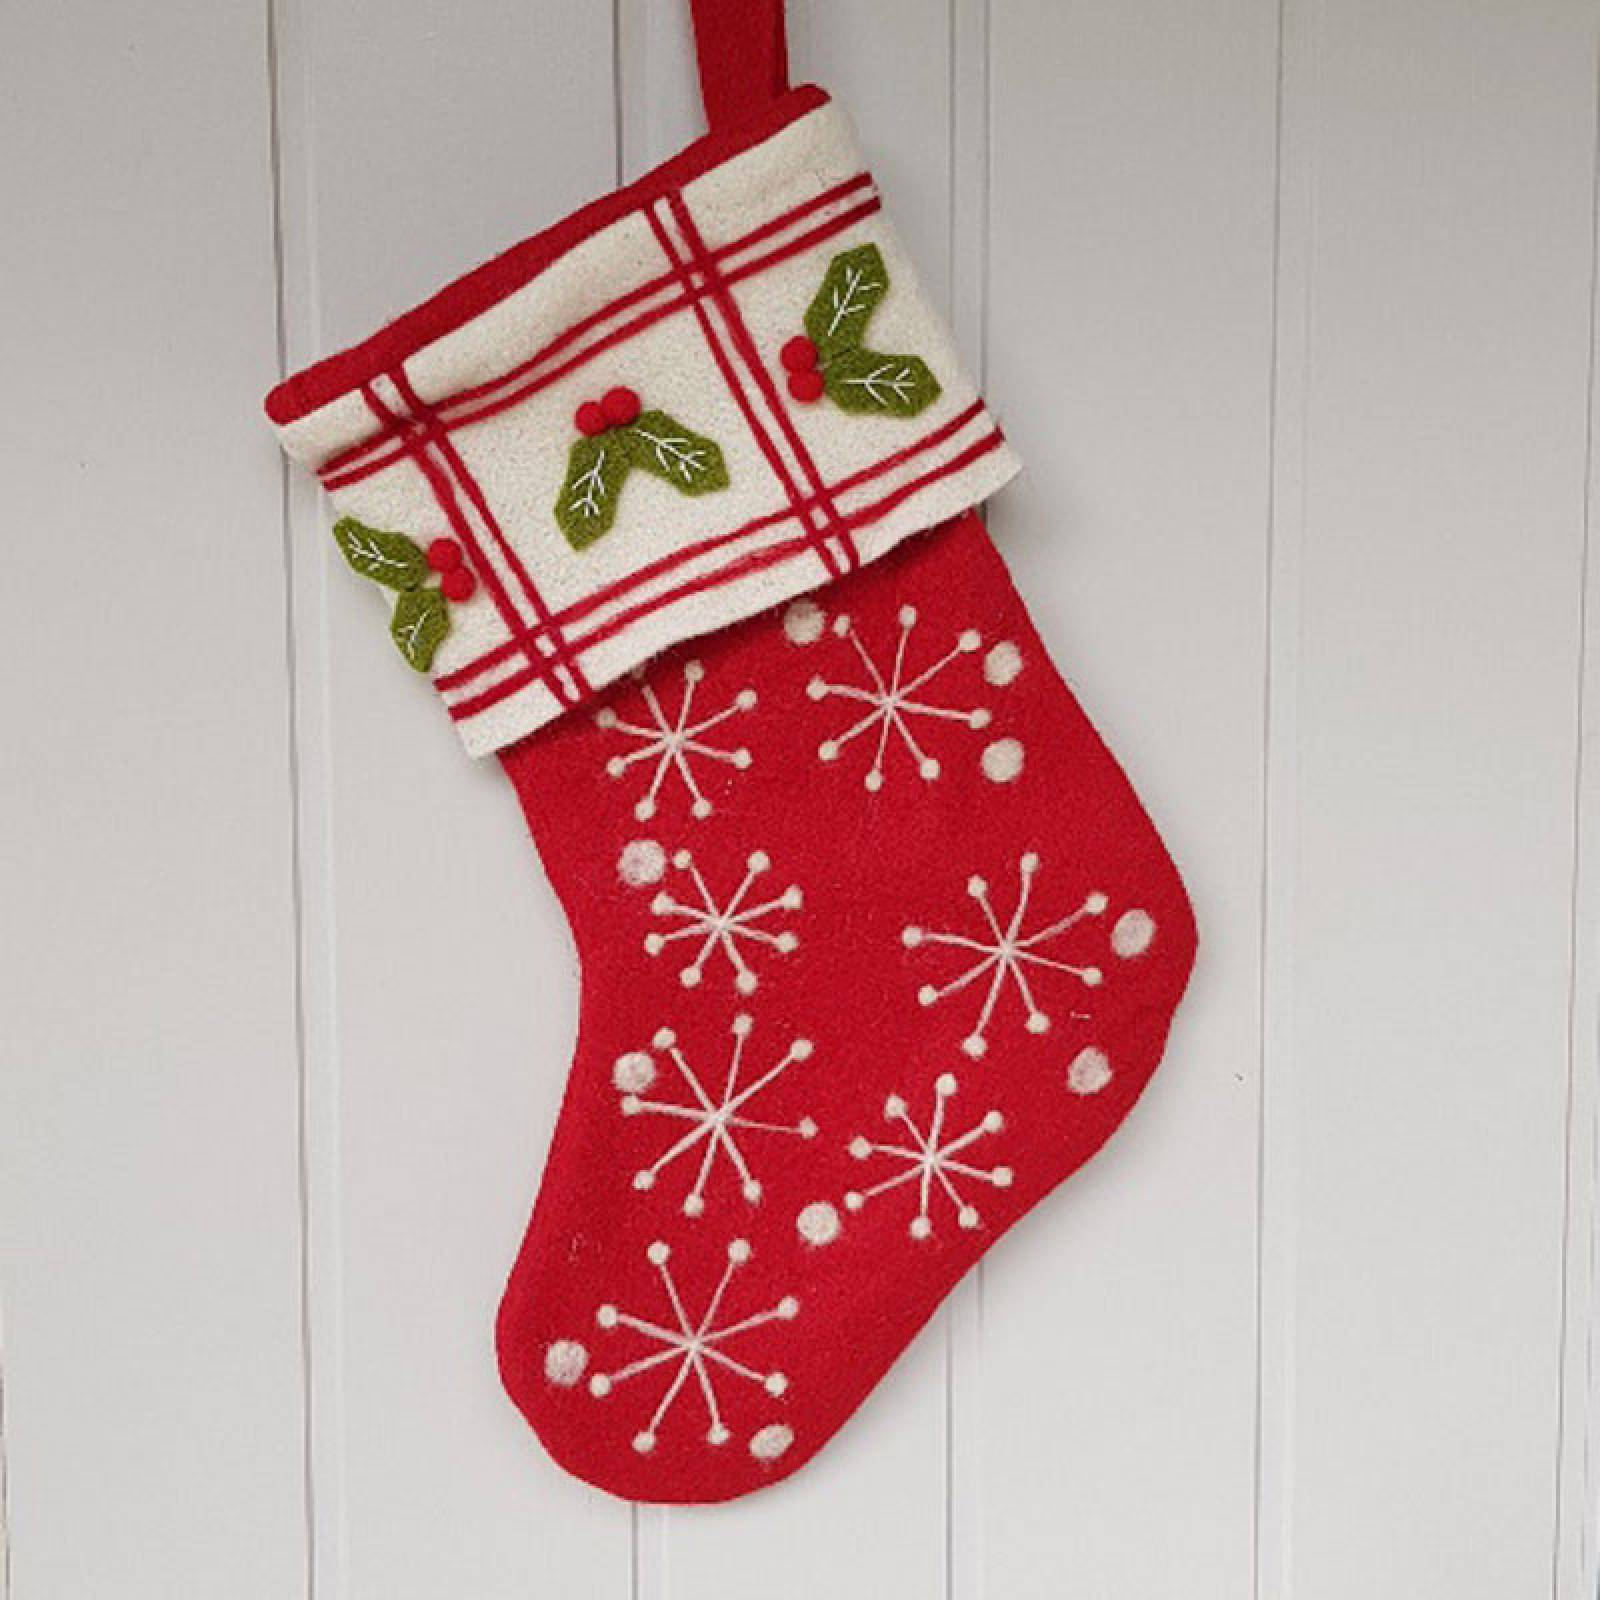 Christmas Stocking With Snowflakes And Holly